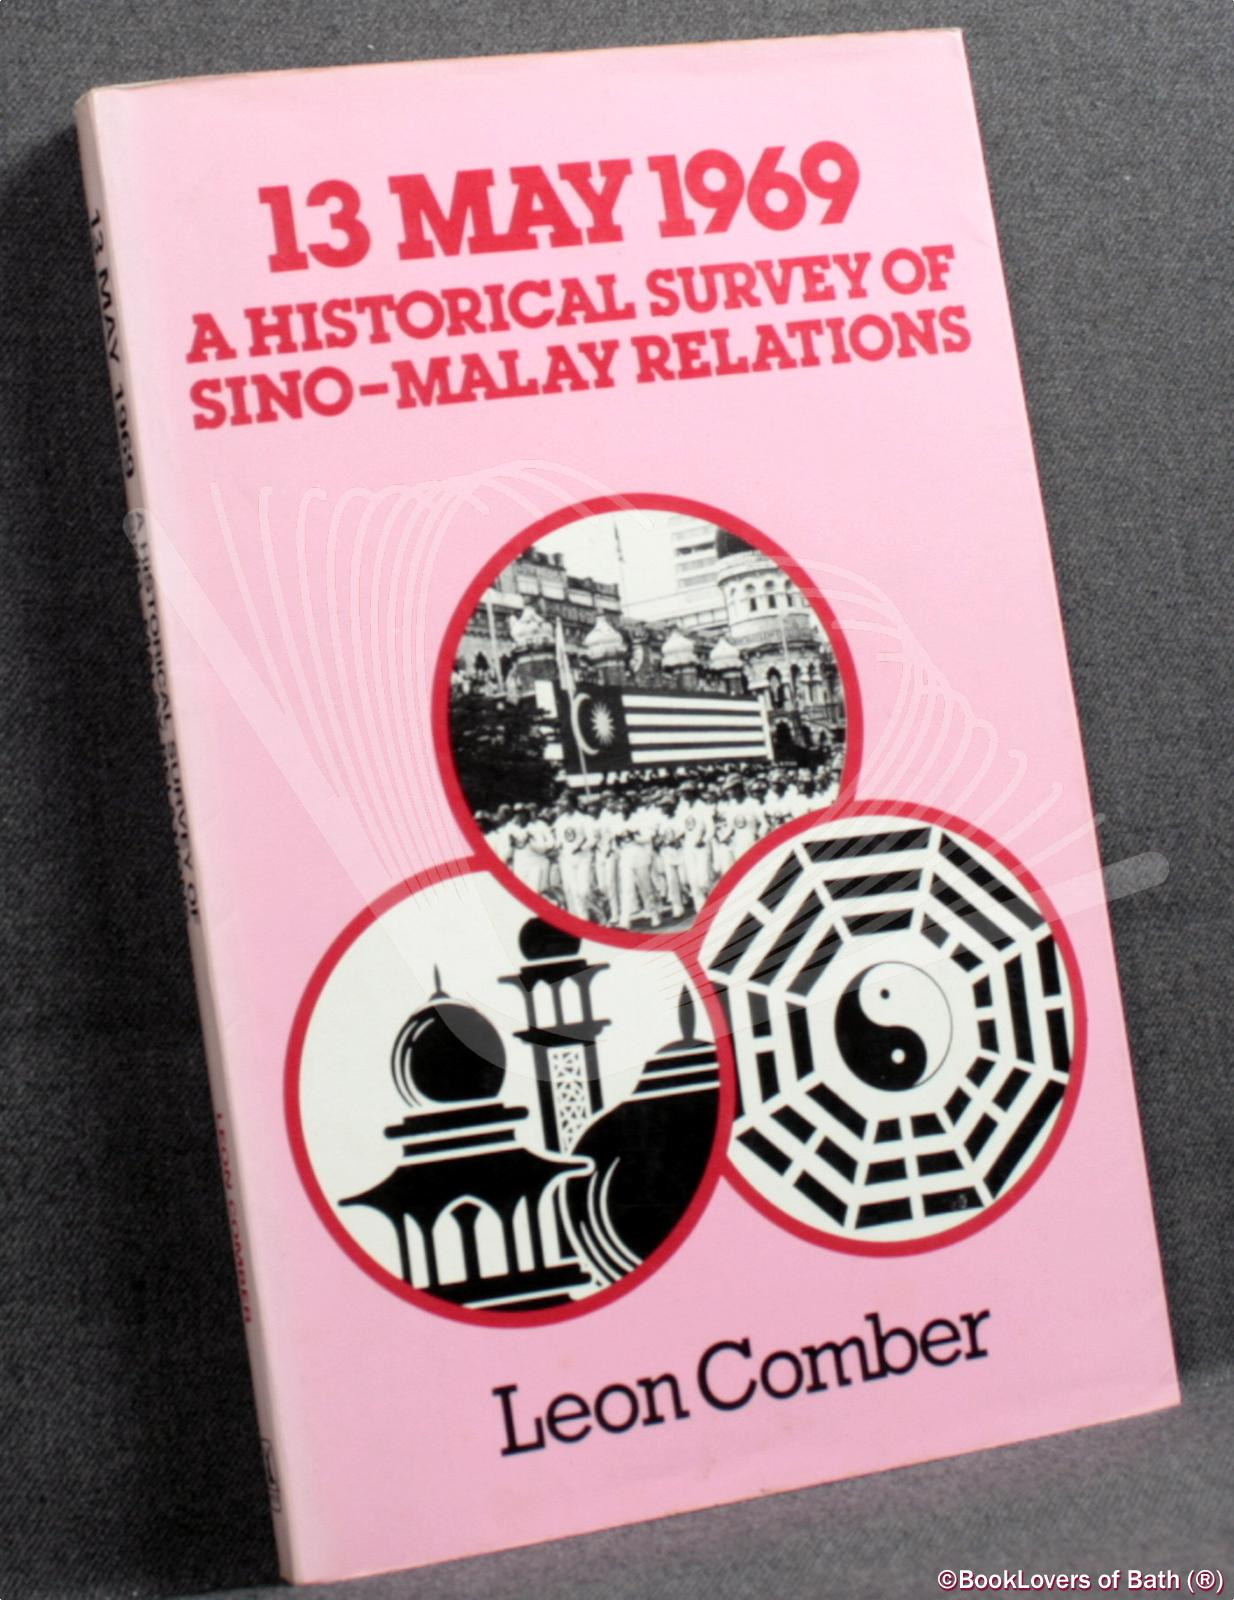 13 May 1969: A Historical Survey of Sino-Malay Relations - Leon Comber